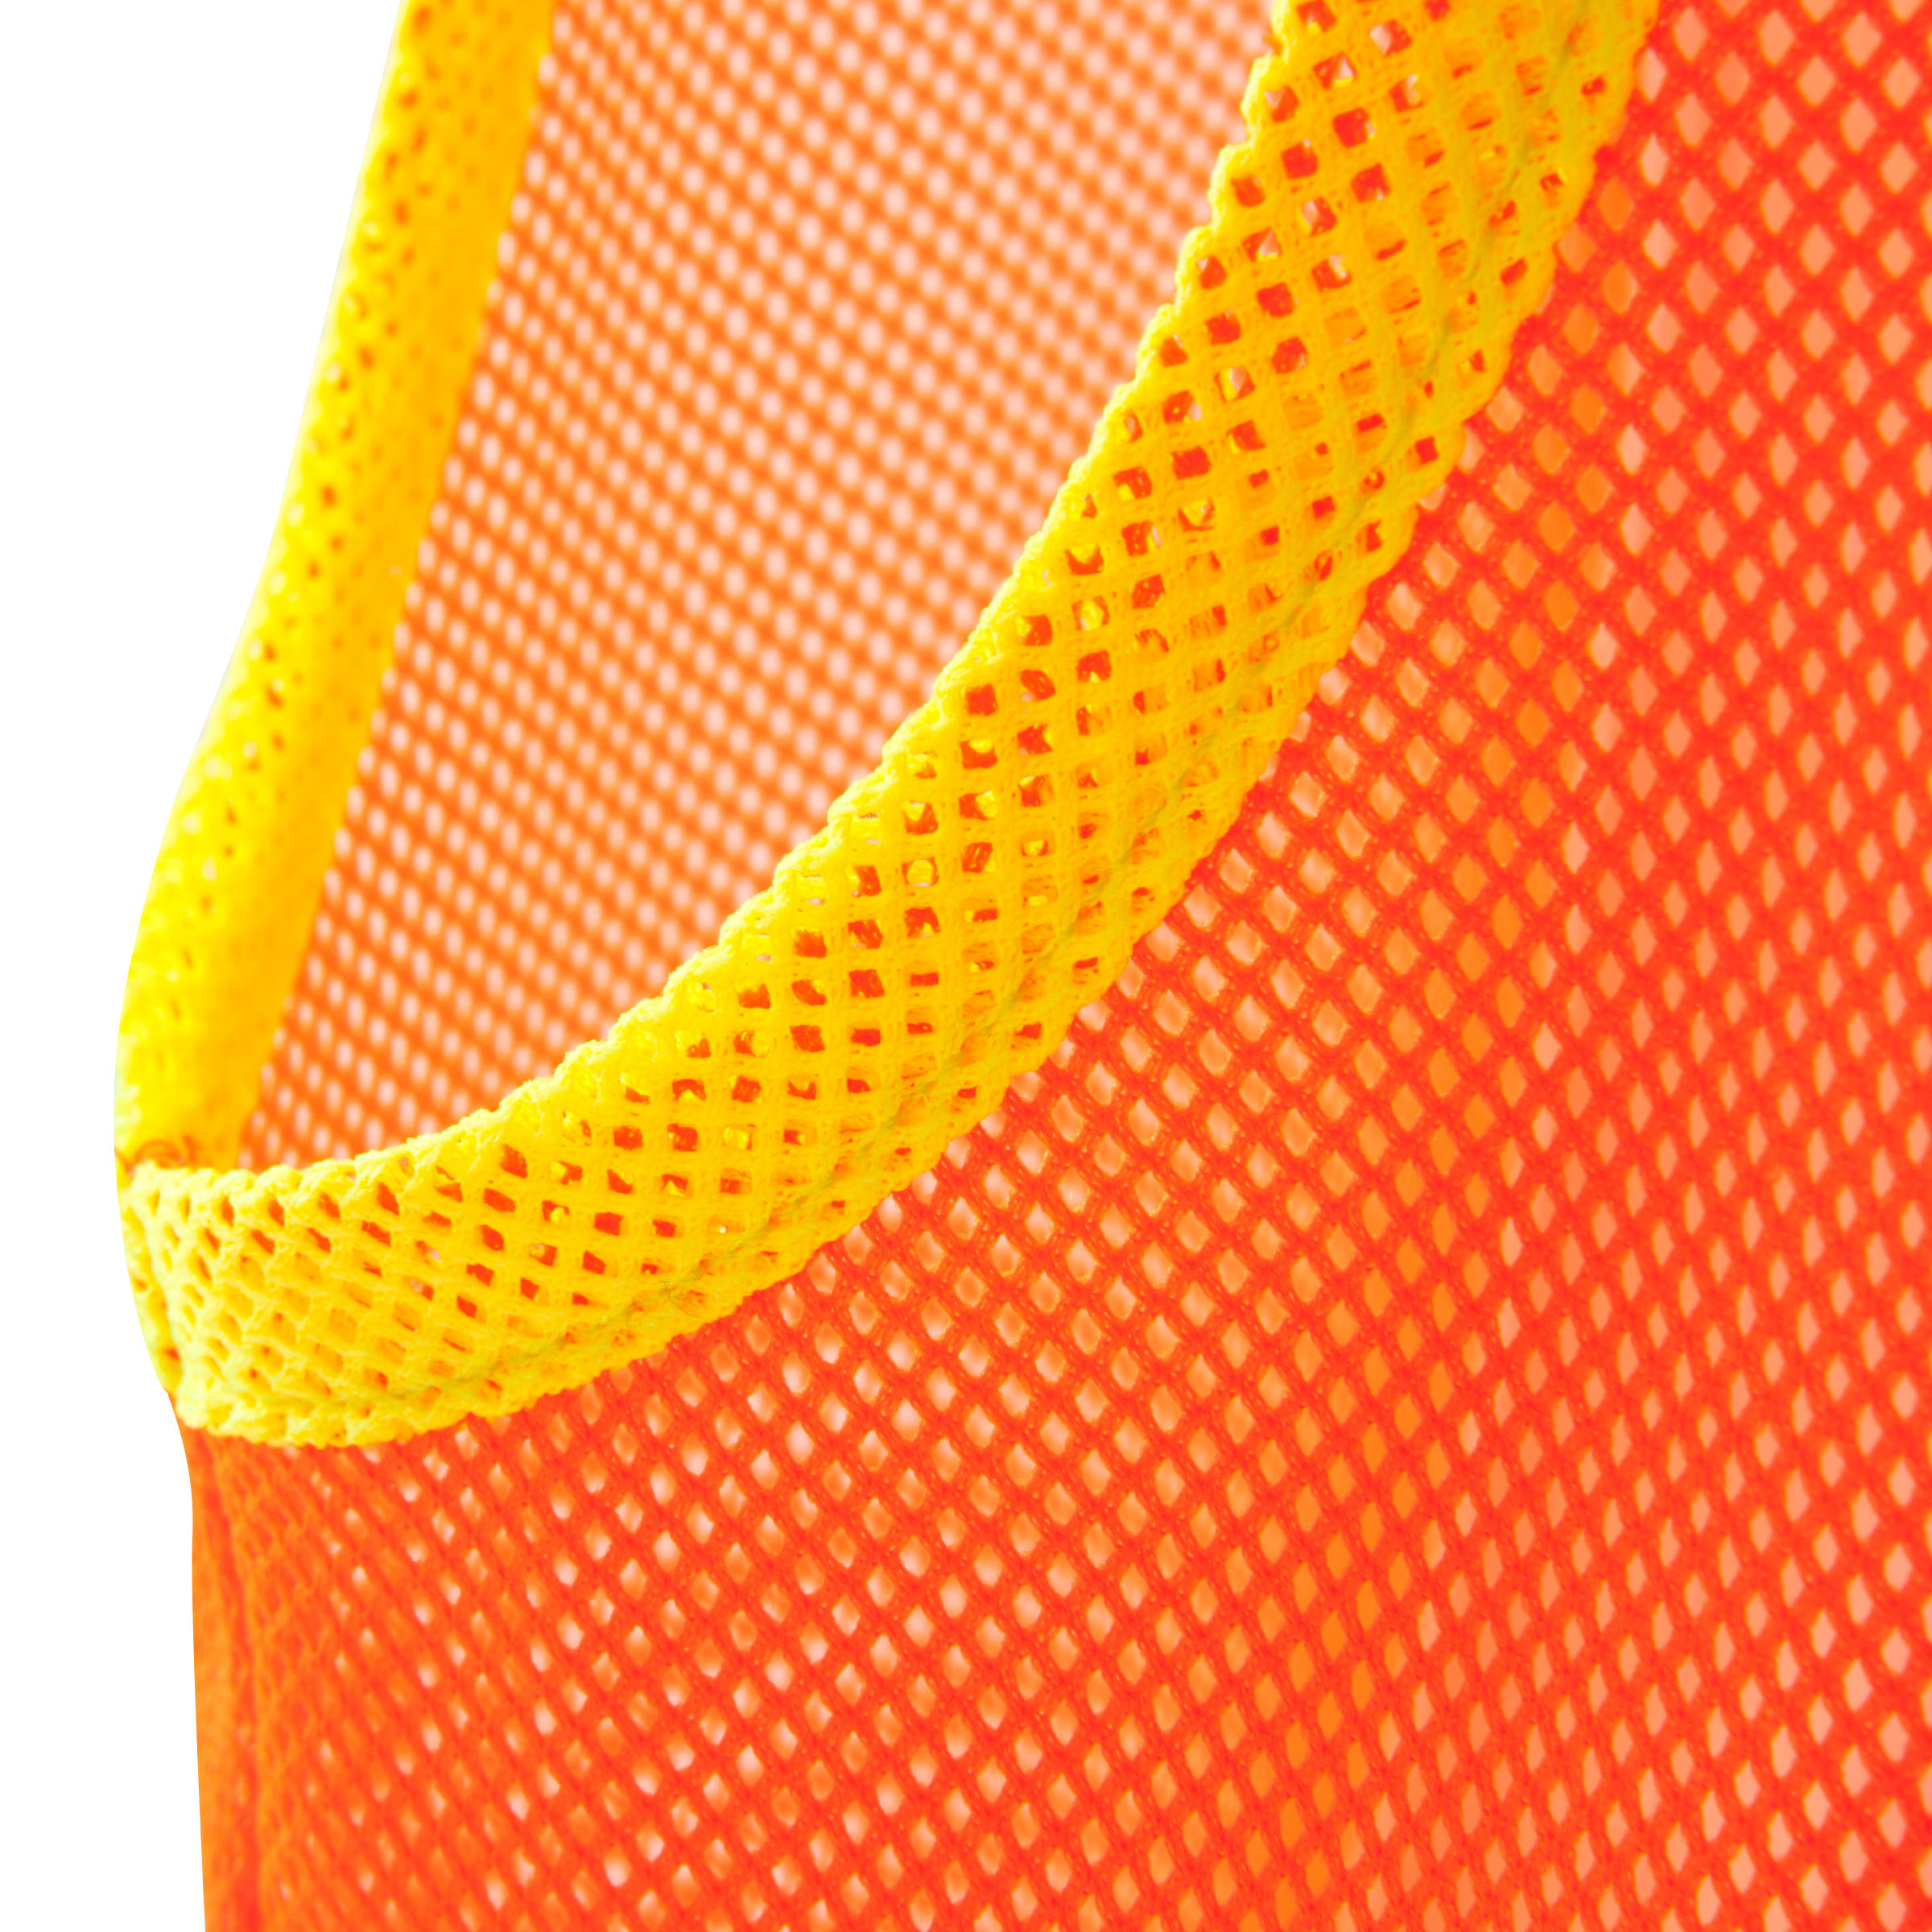 Dossard pour sports collectifs enfant orange